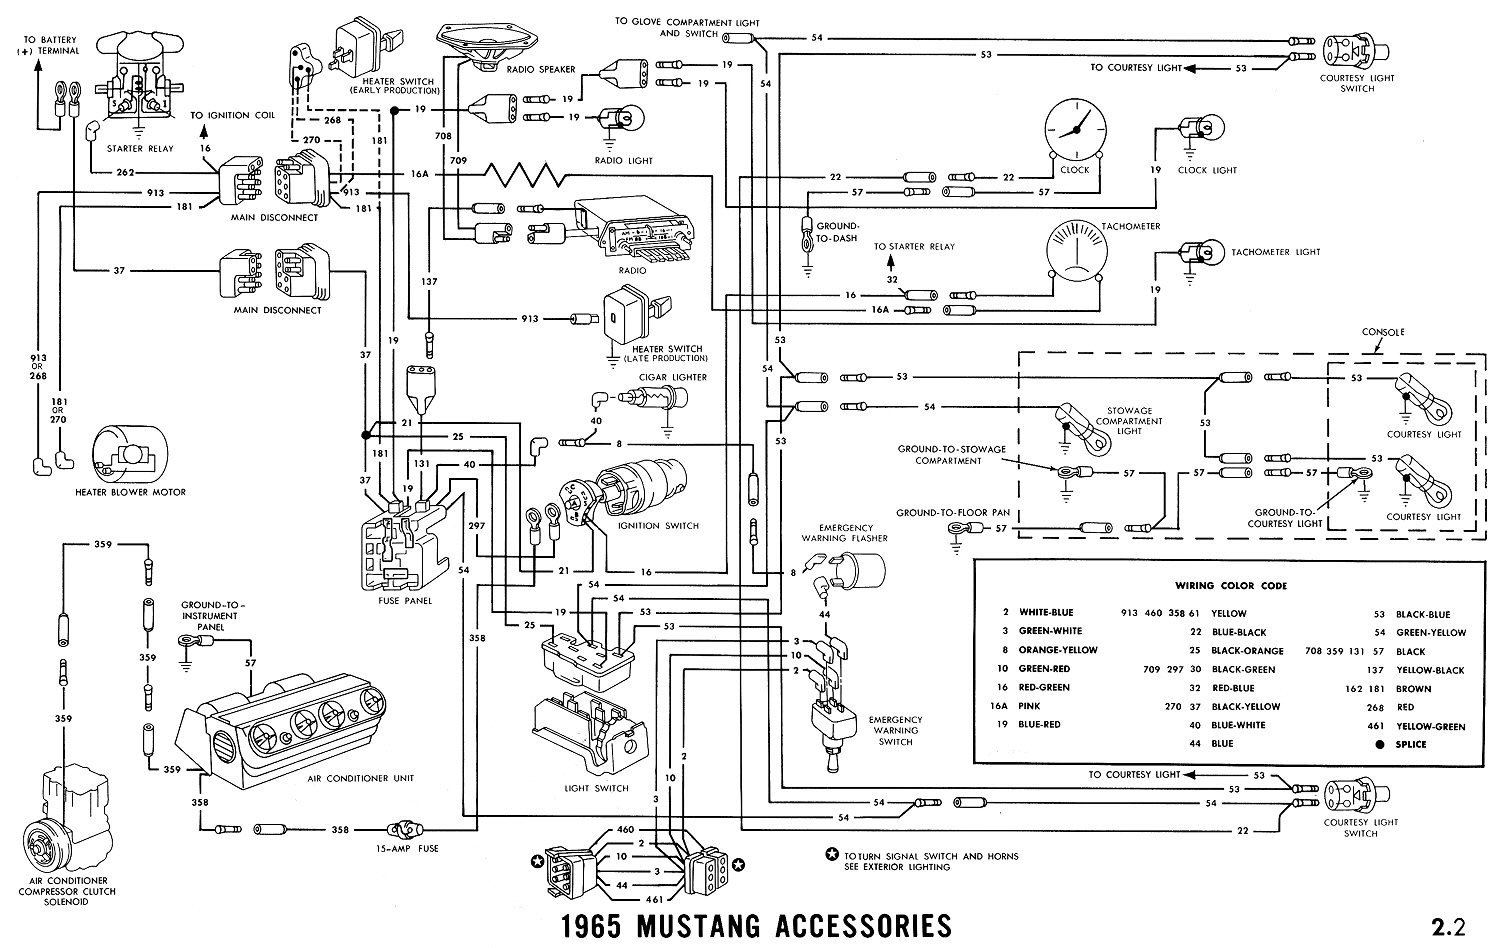 1965i 1965 mustang wiring diagrams average joe restoration 1966 mustang heater wiring diagram at bayanpartner.co